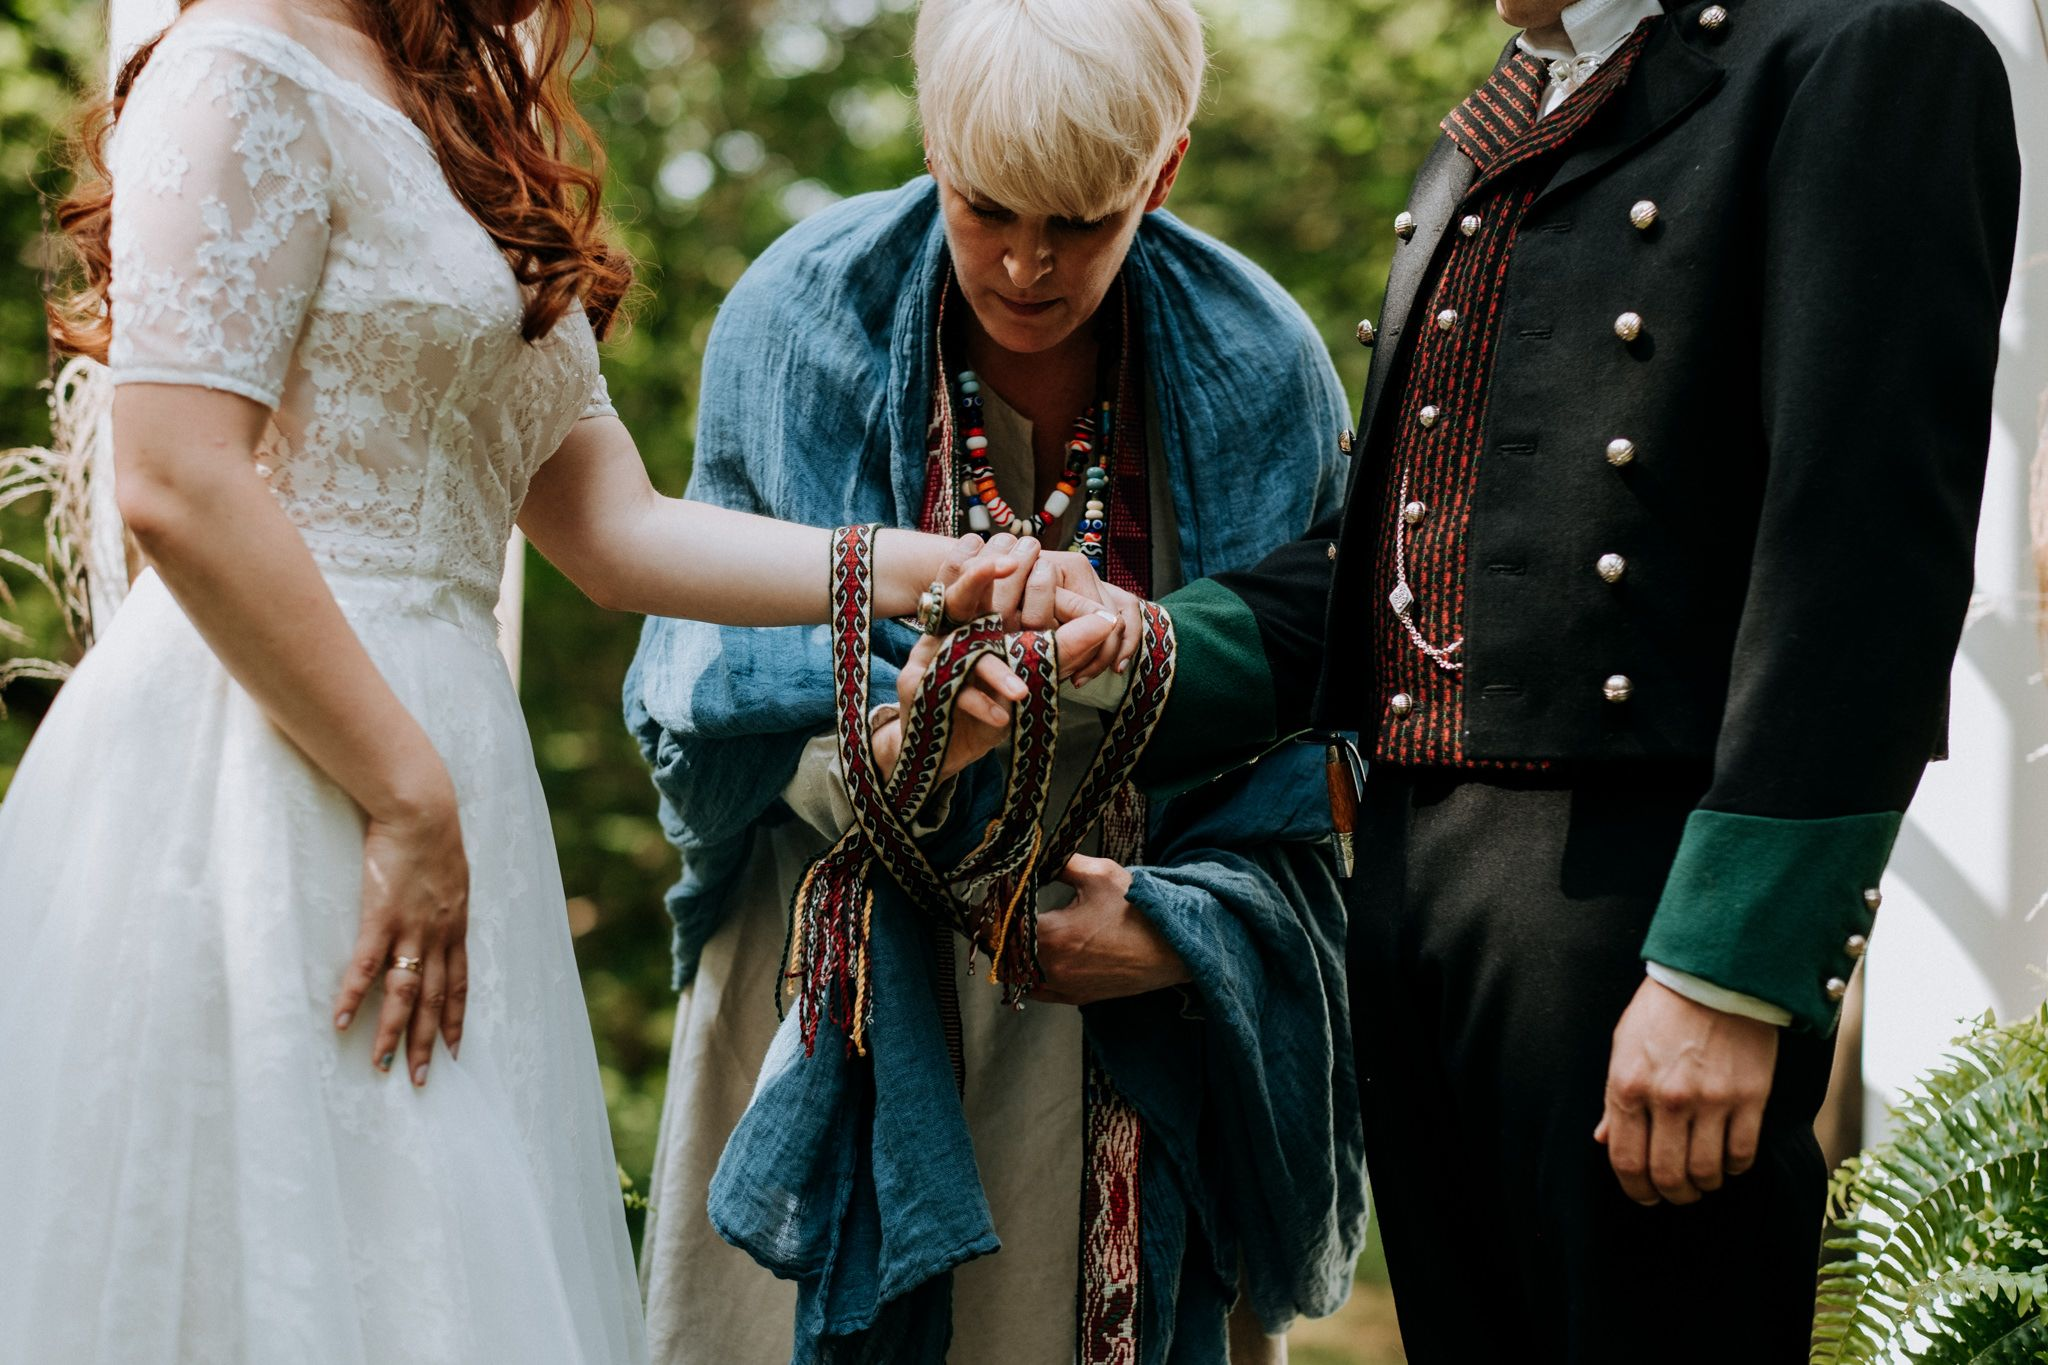 Handfasting ceremony wedding traditions in 2020